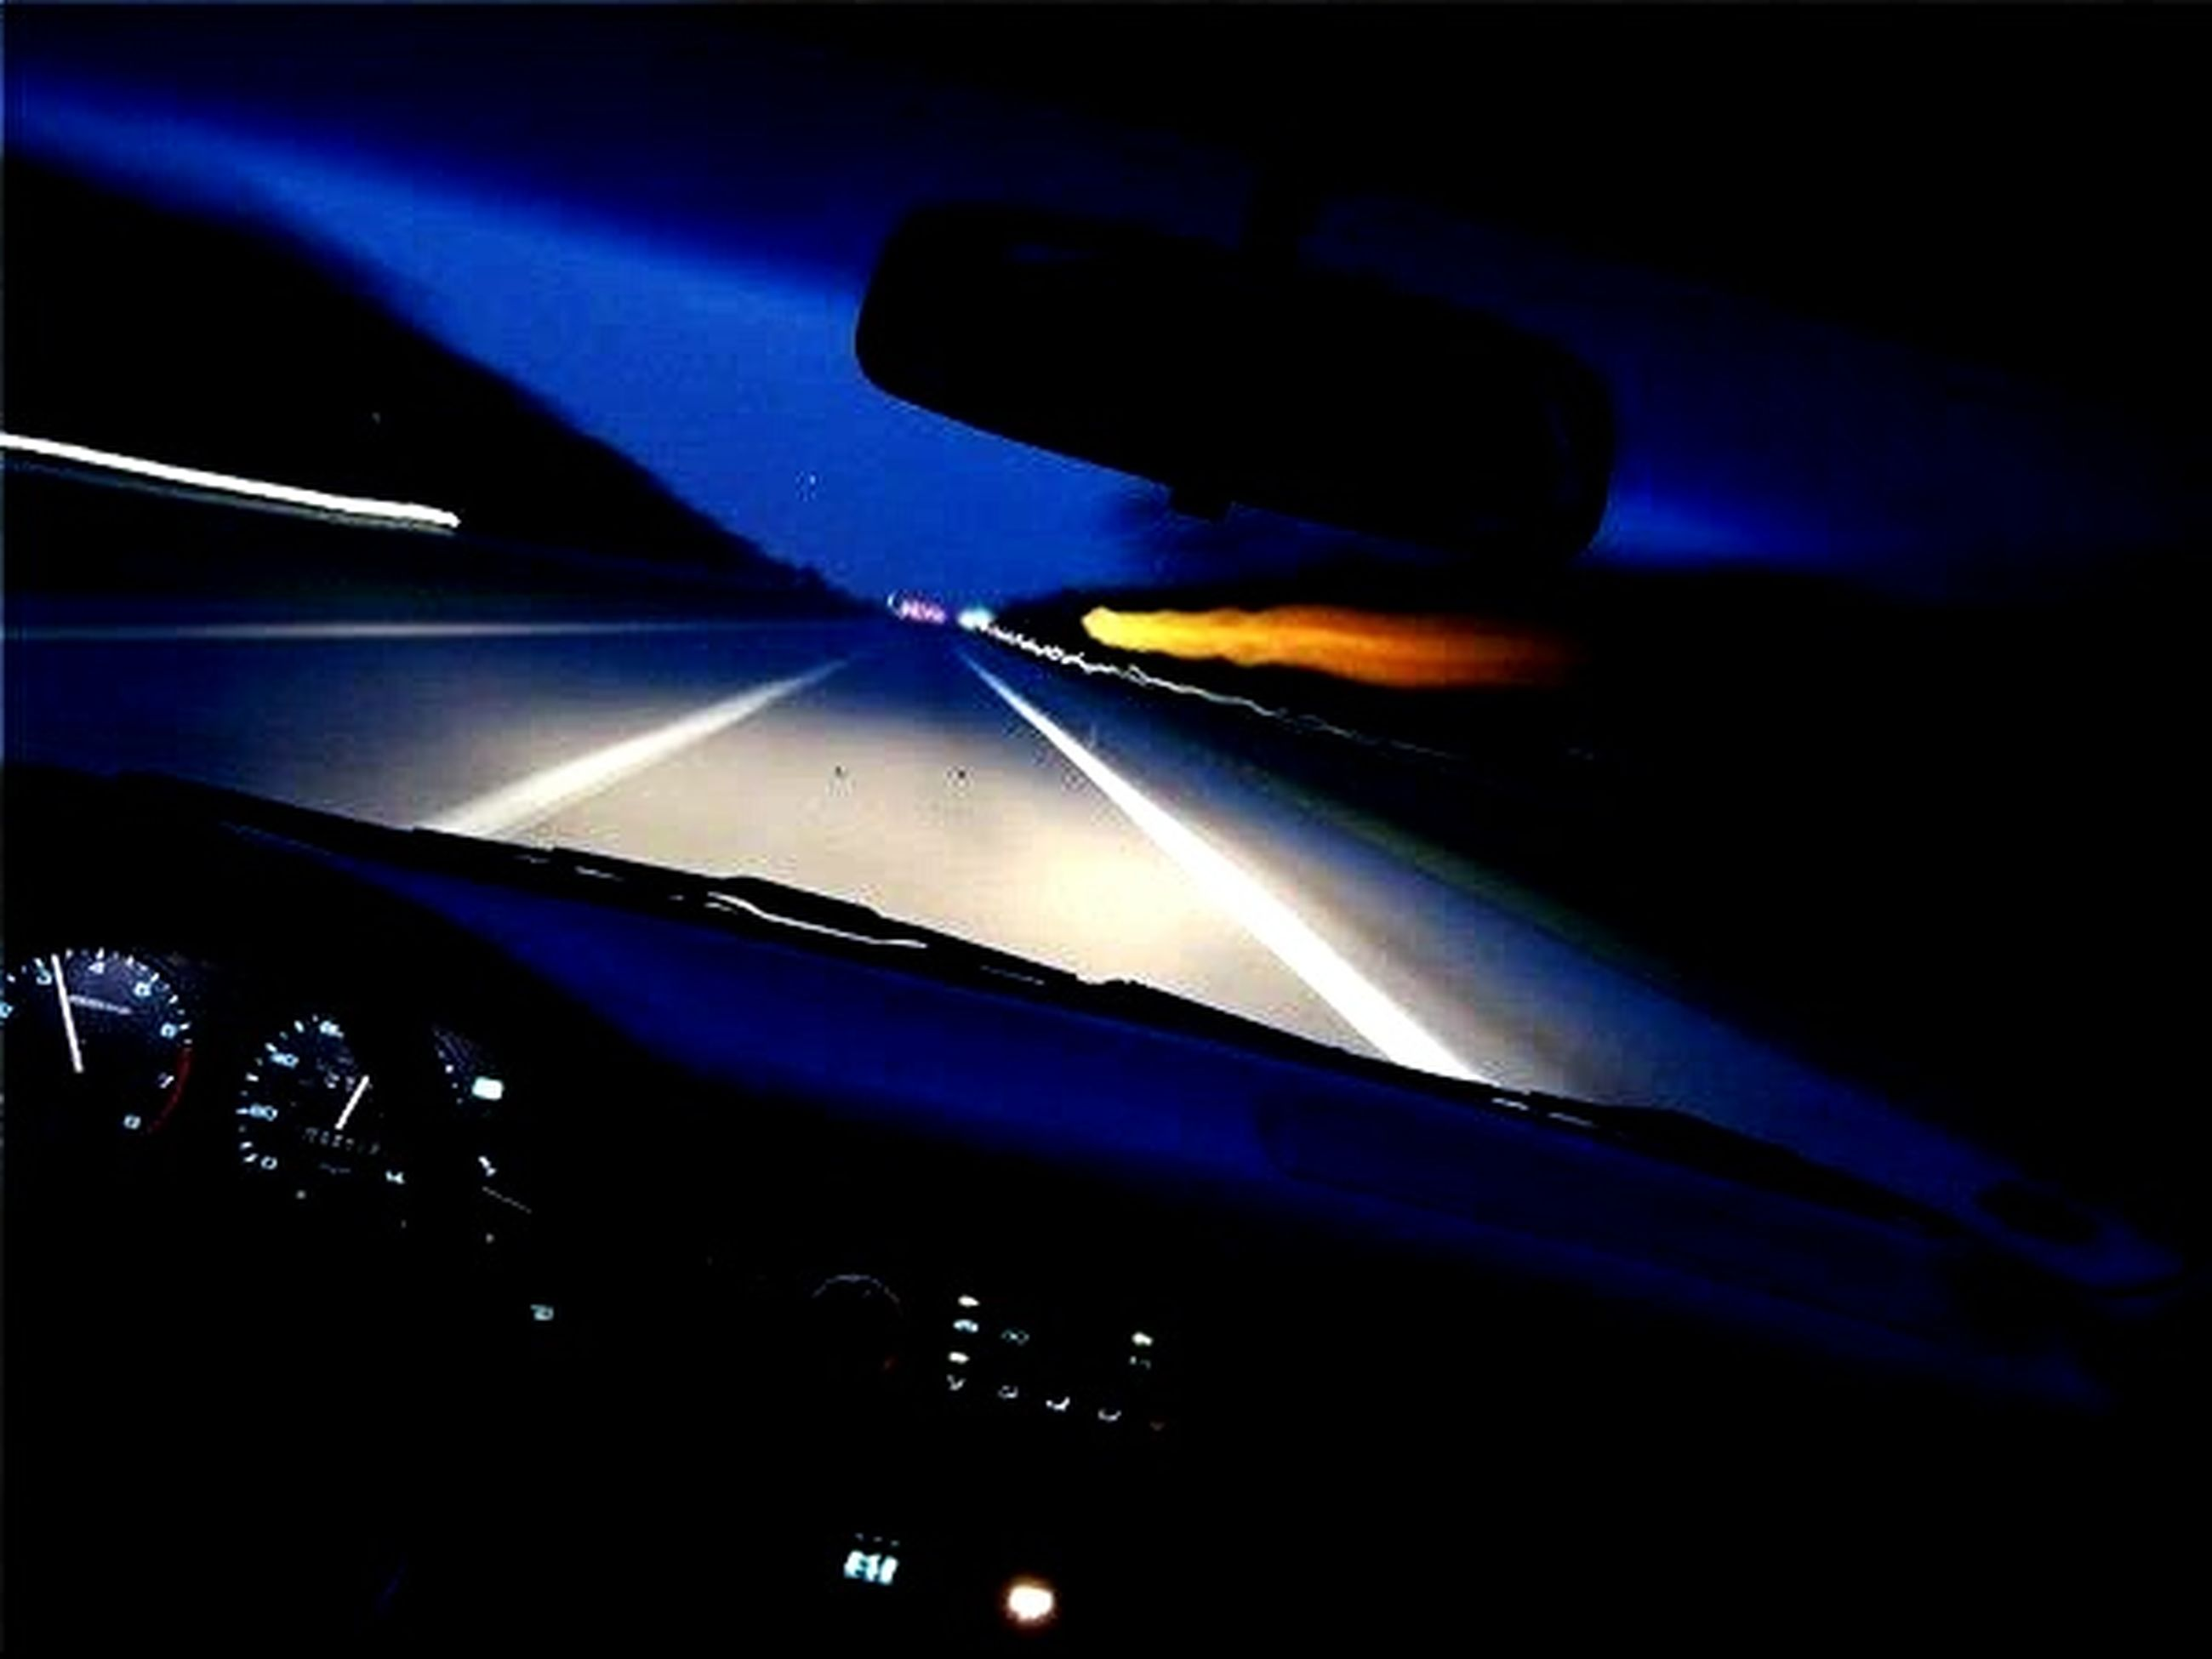 illuminated, night, transportation, blue, multi colored, abstract, lighting equipment, mode of transport, light - natural phenomenon, no people, long exposure, glowing, motion, pattern, speed, car, blurred motion, indoors, low angle view, close-up